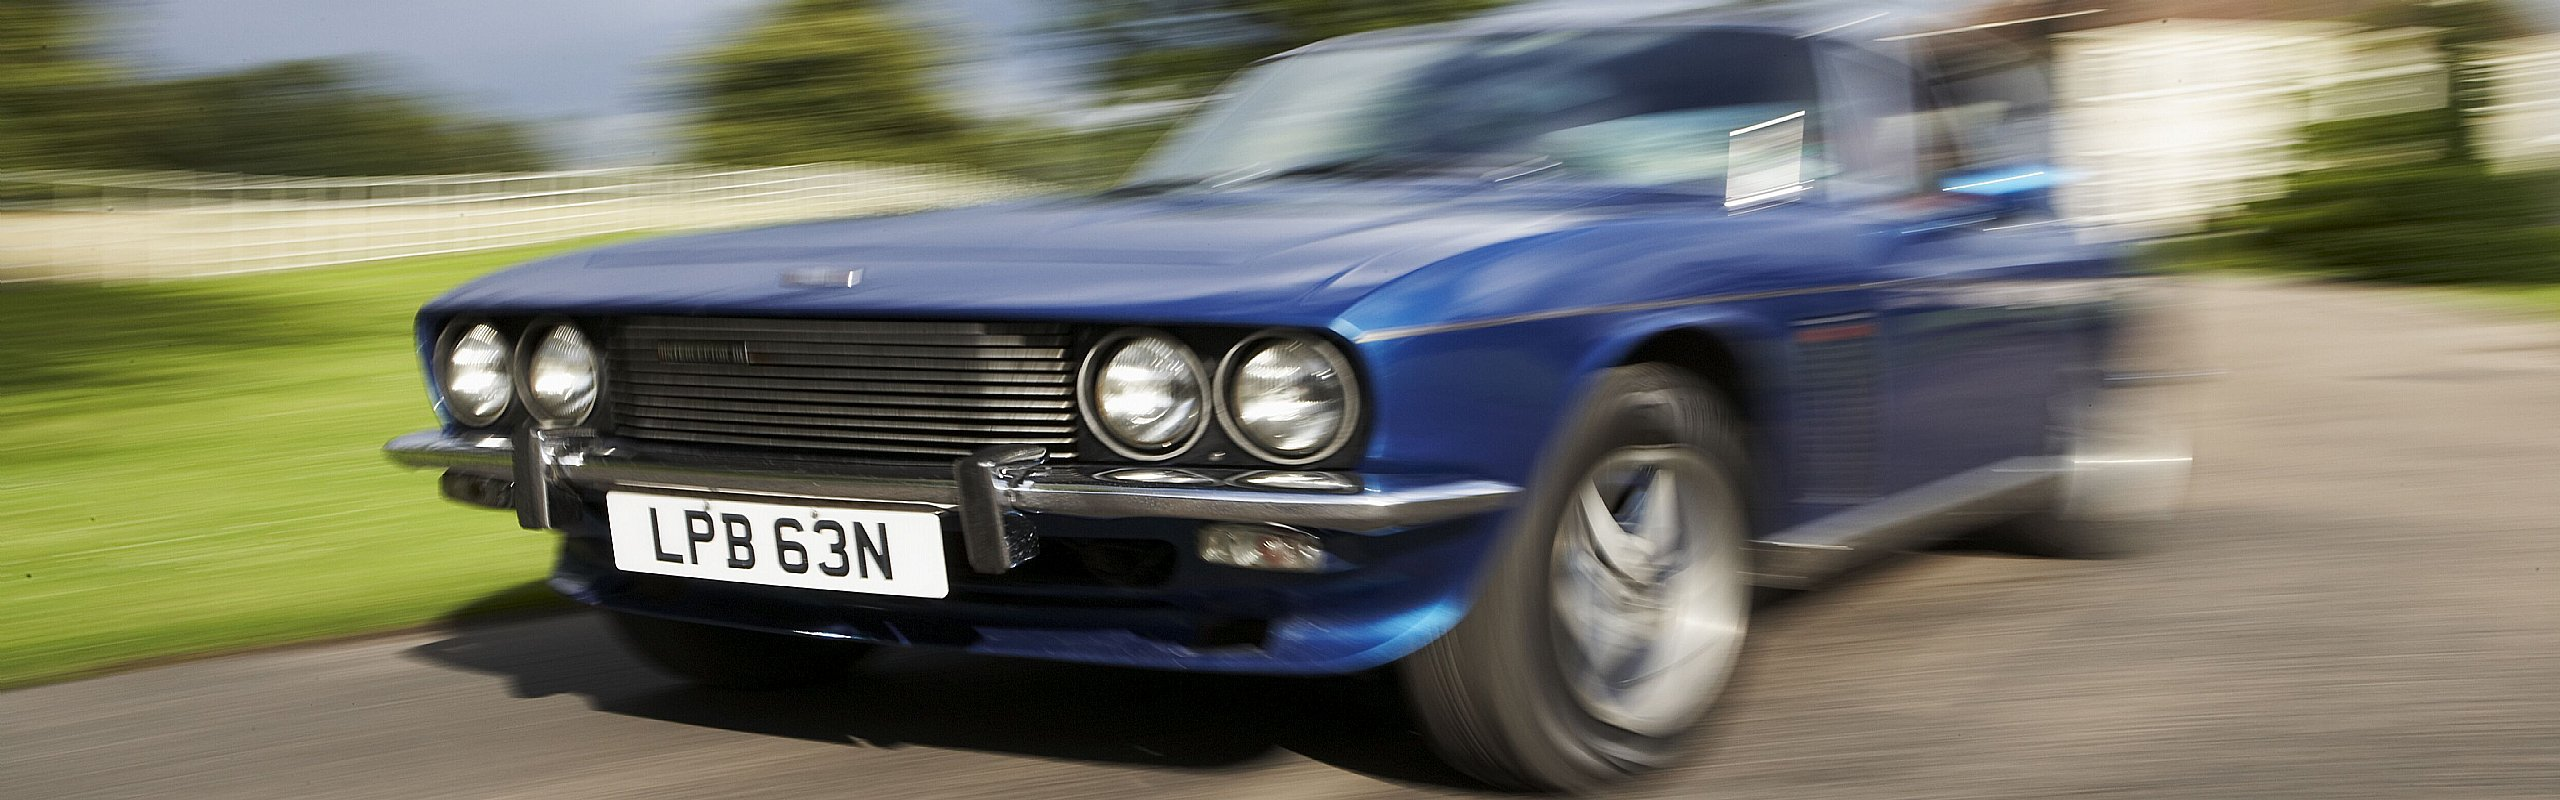 Great Escape Classic Car Hire - choice of 2 Jensen Interceptor Mk3 vehicles for rental  in the Midlands and Cotswolds, book online